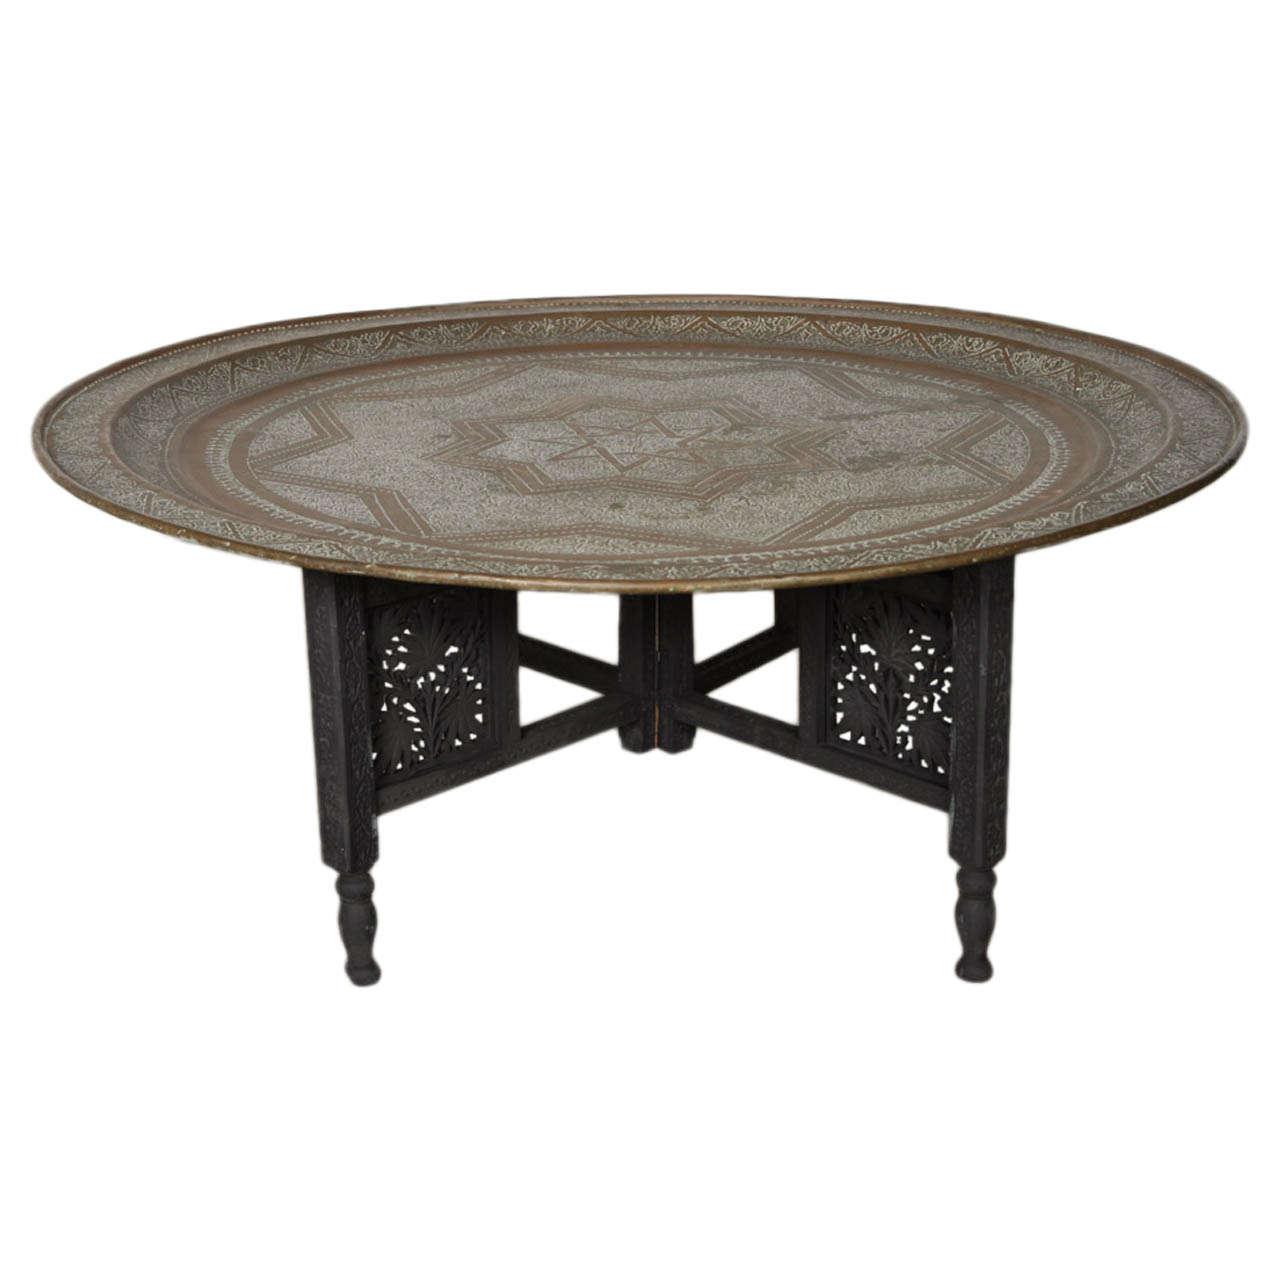 moroccan round brass tray coffee table at 1stdibs. Black Bedroom Furniture Sets. Home Design Ideas